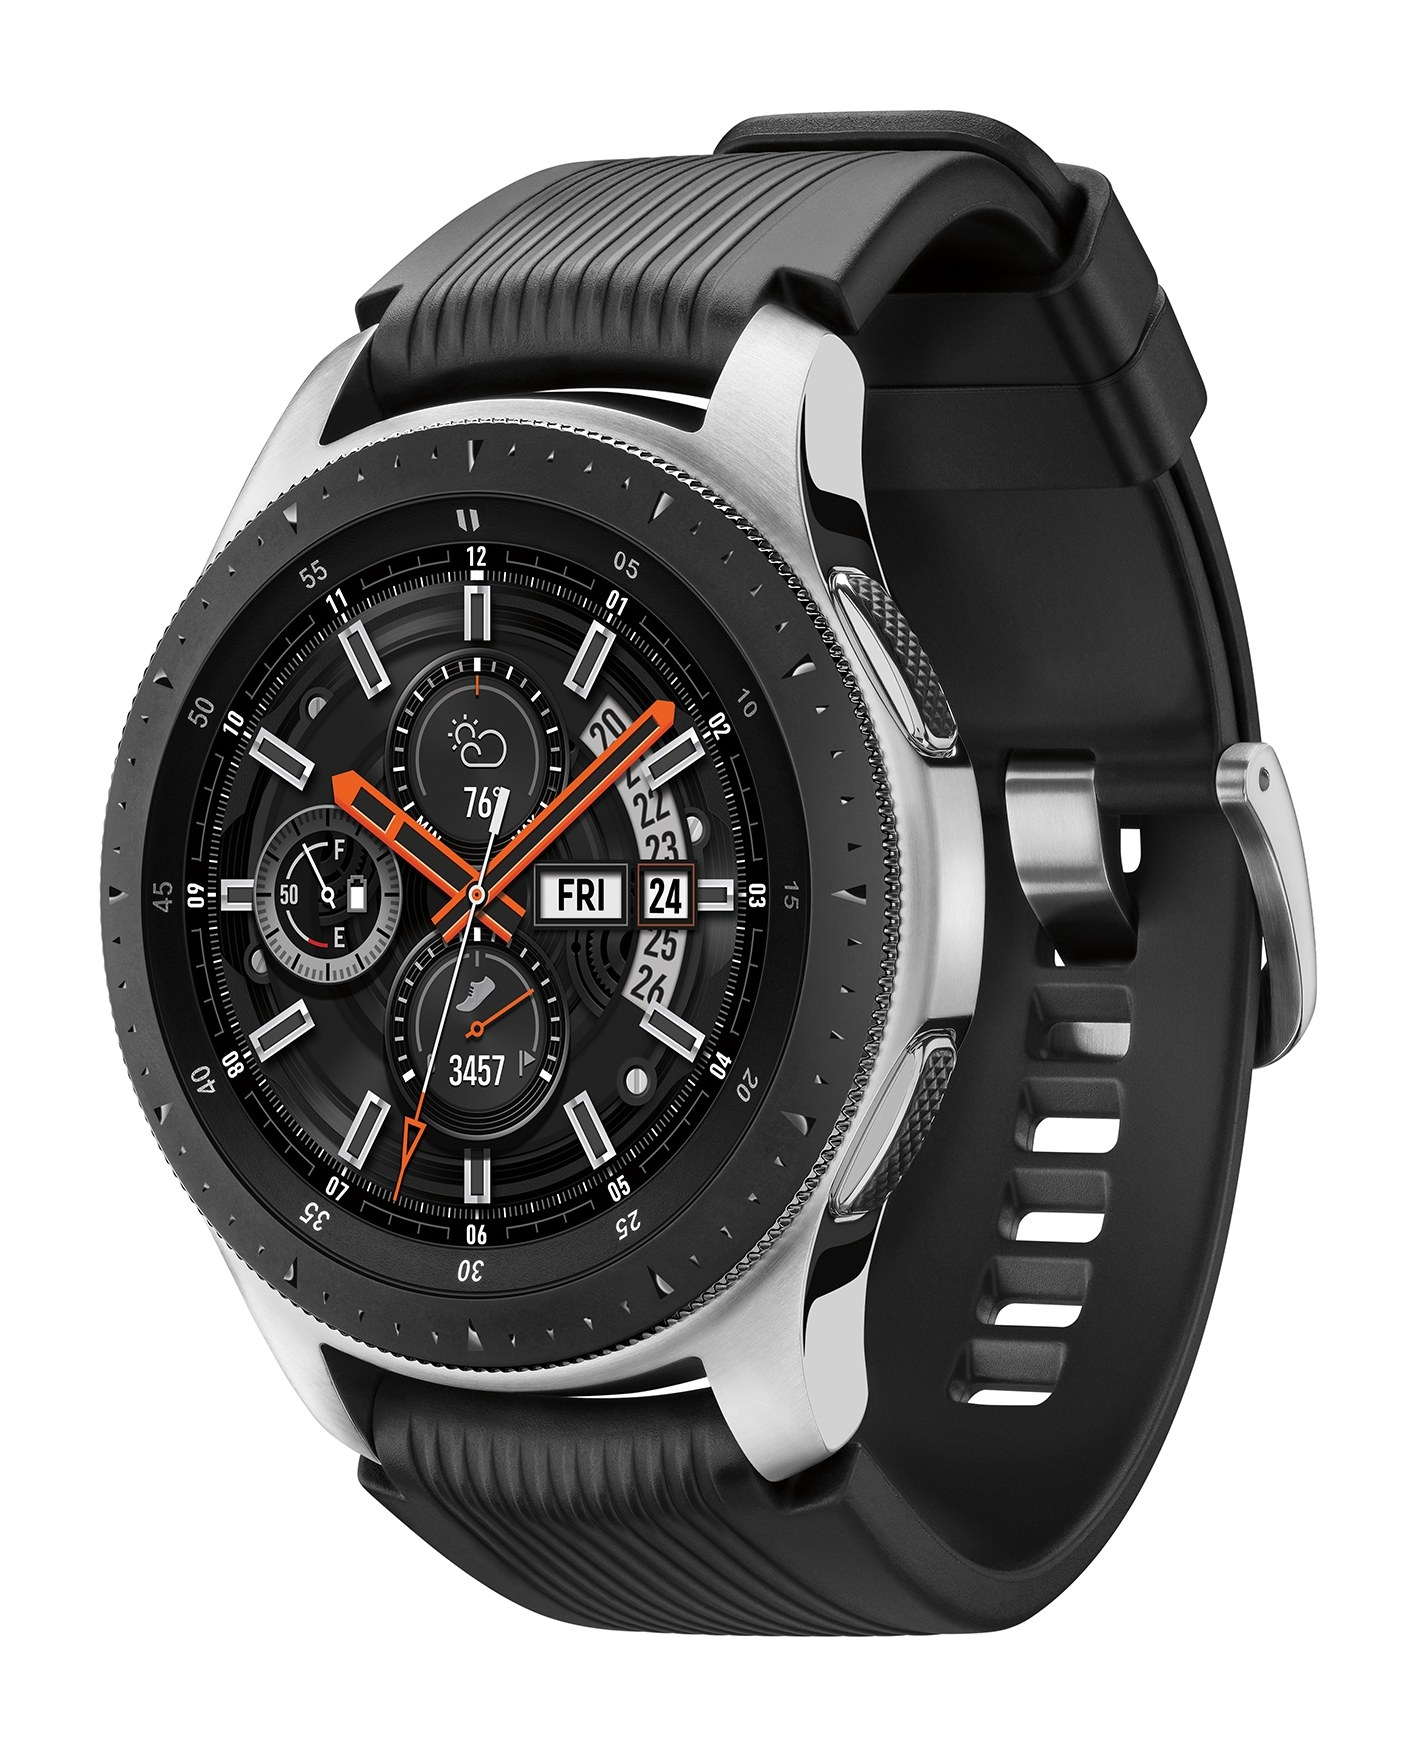 black galaxy smart watch with a traditional looking watch face